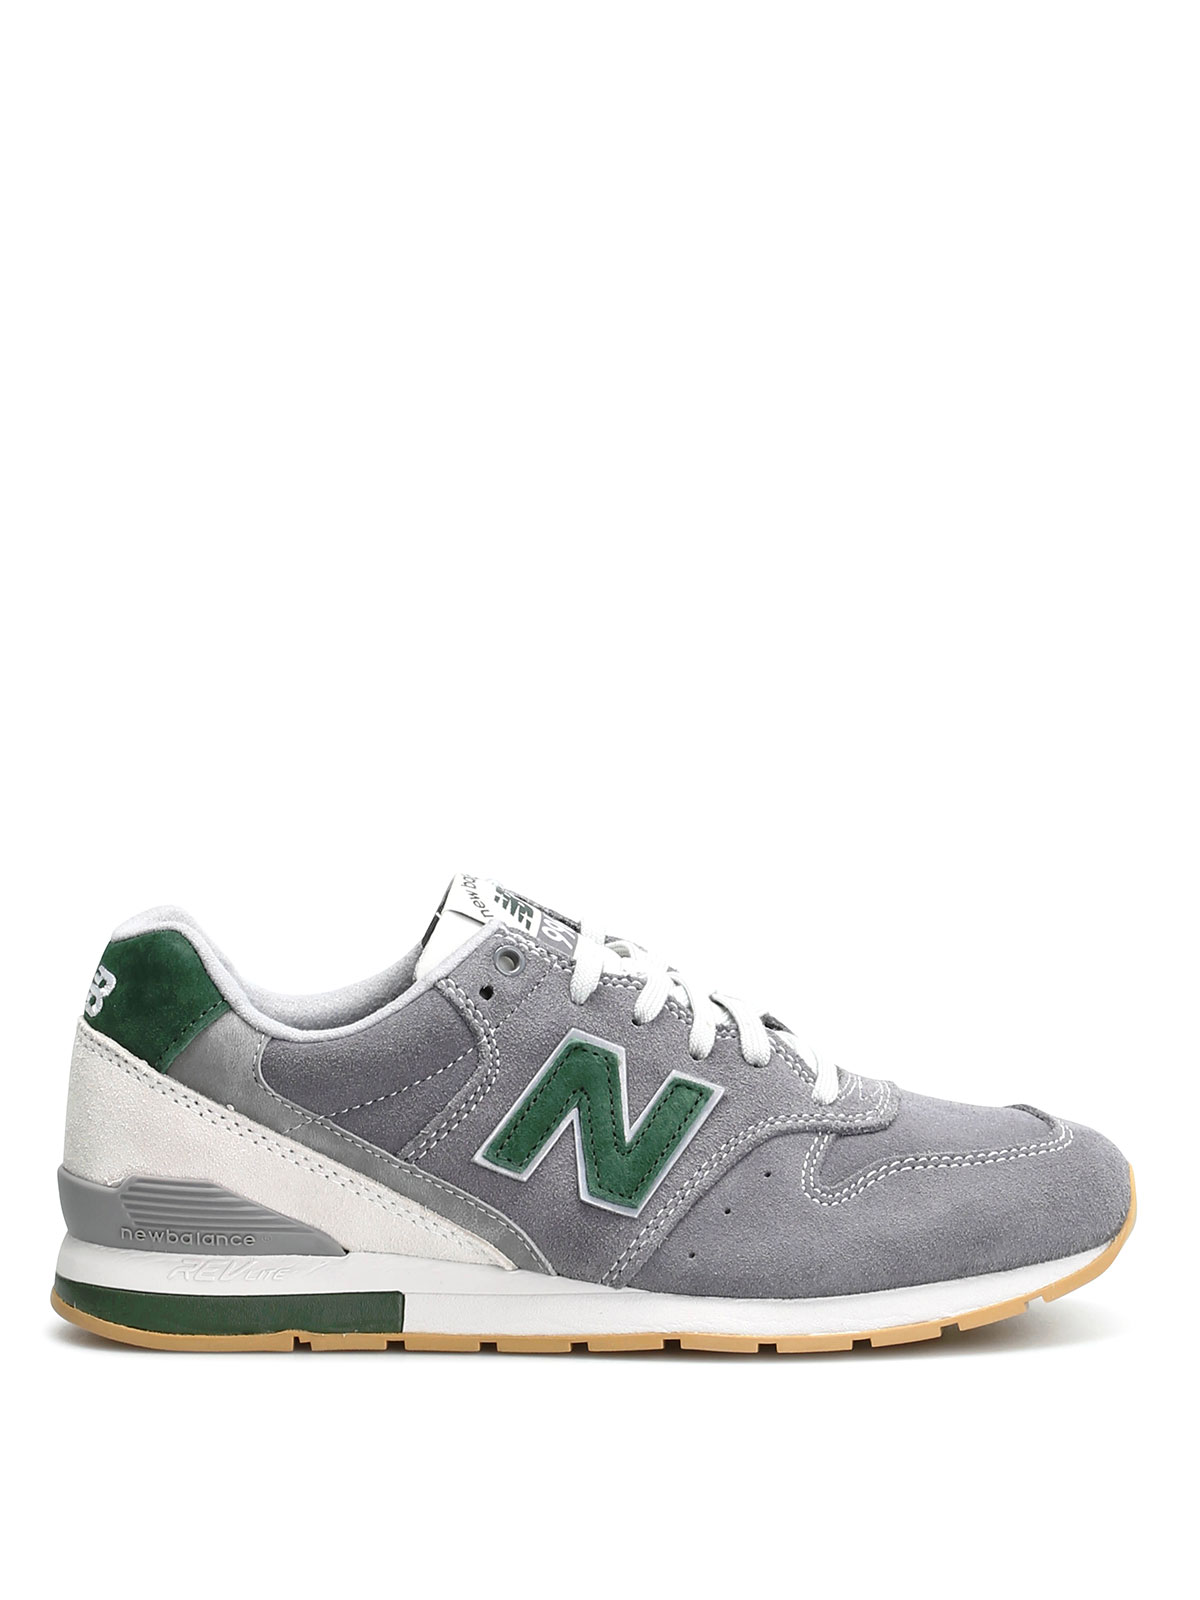 996 classics running sneakers by new balance trainers ikrix. Black Bedroom Furniture Sets. Home Design Ideas